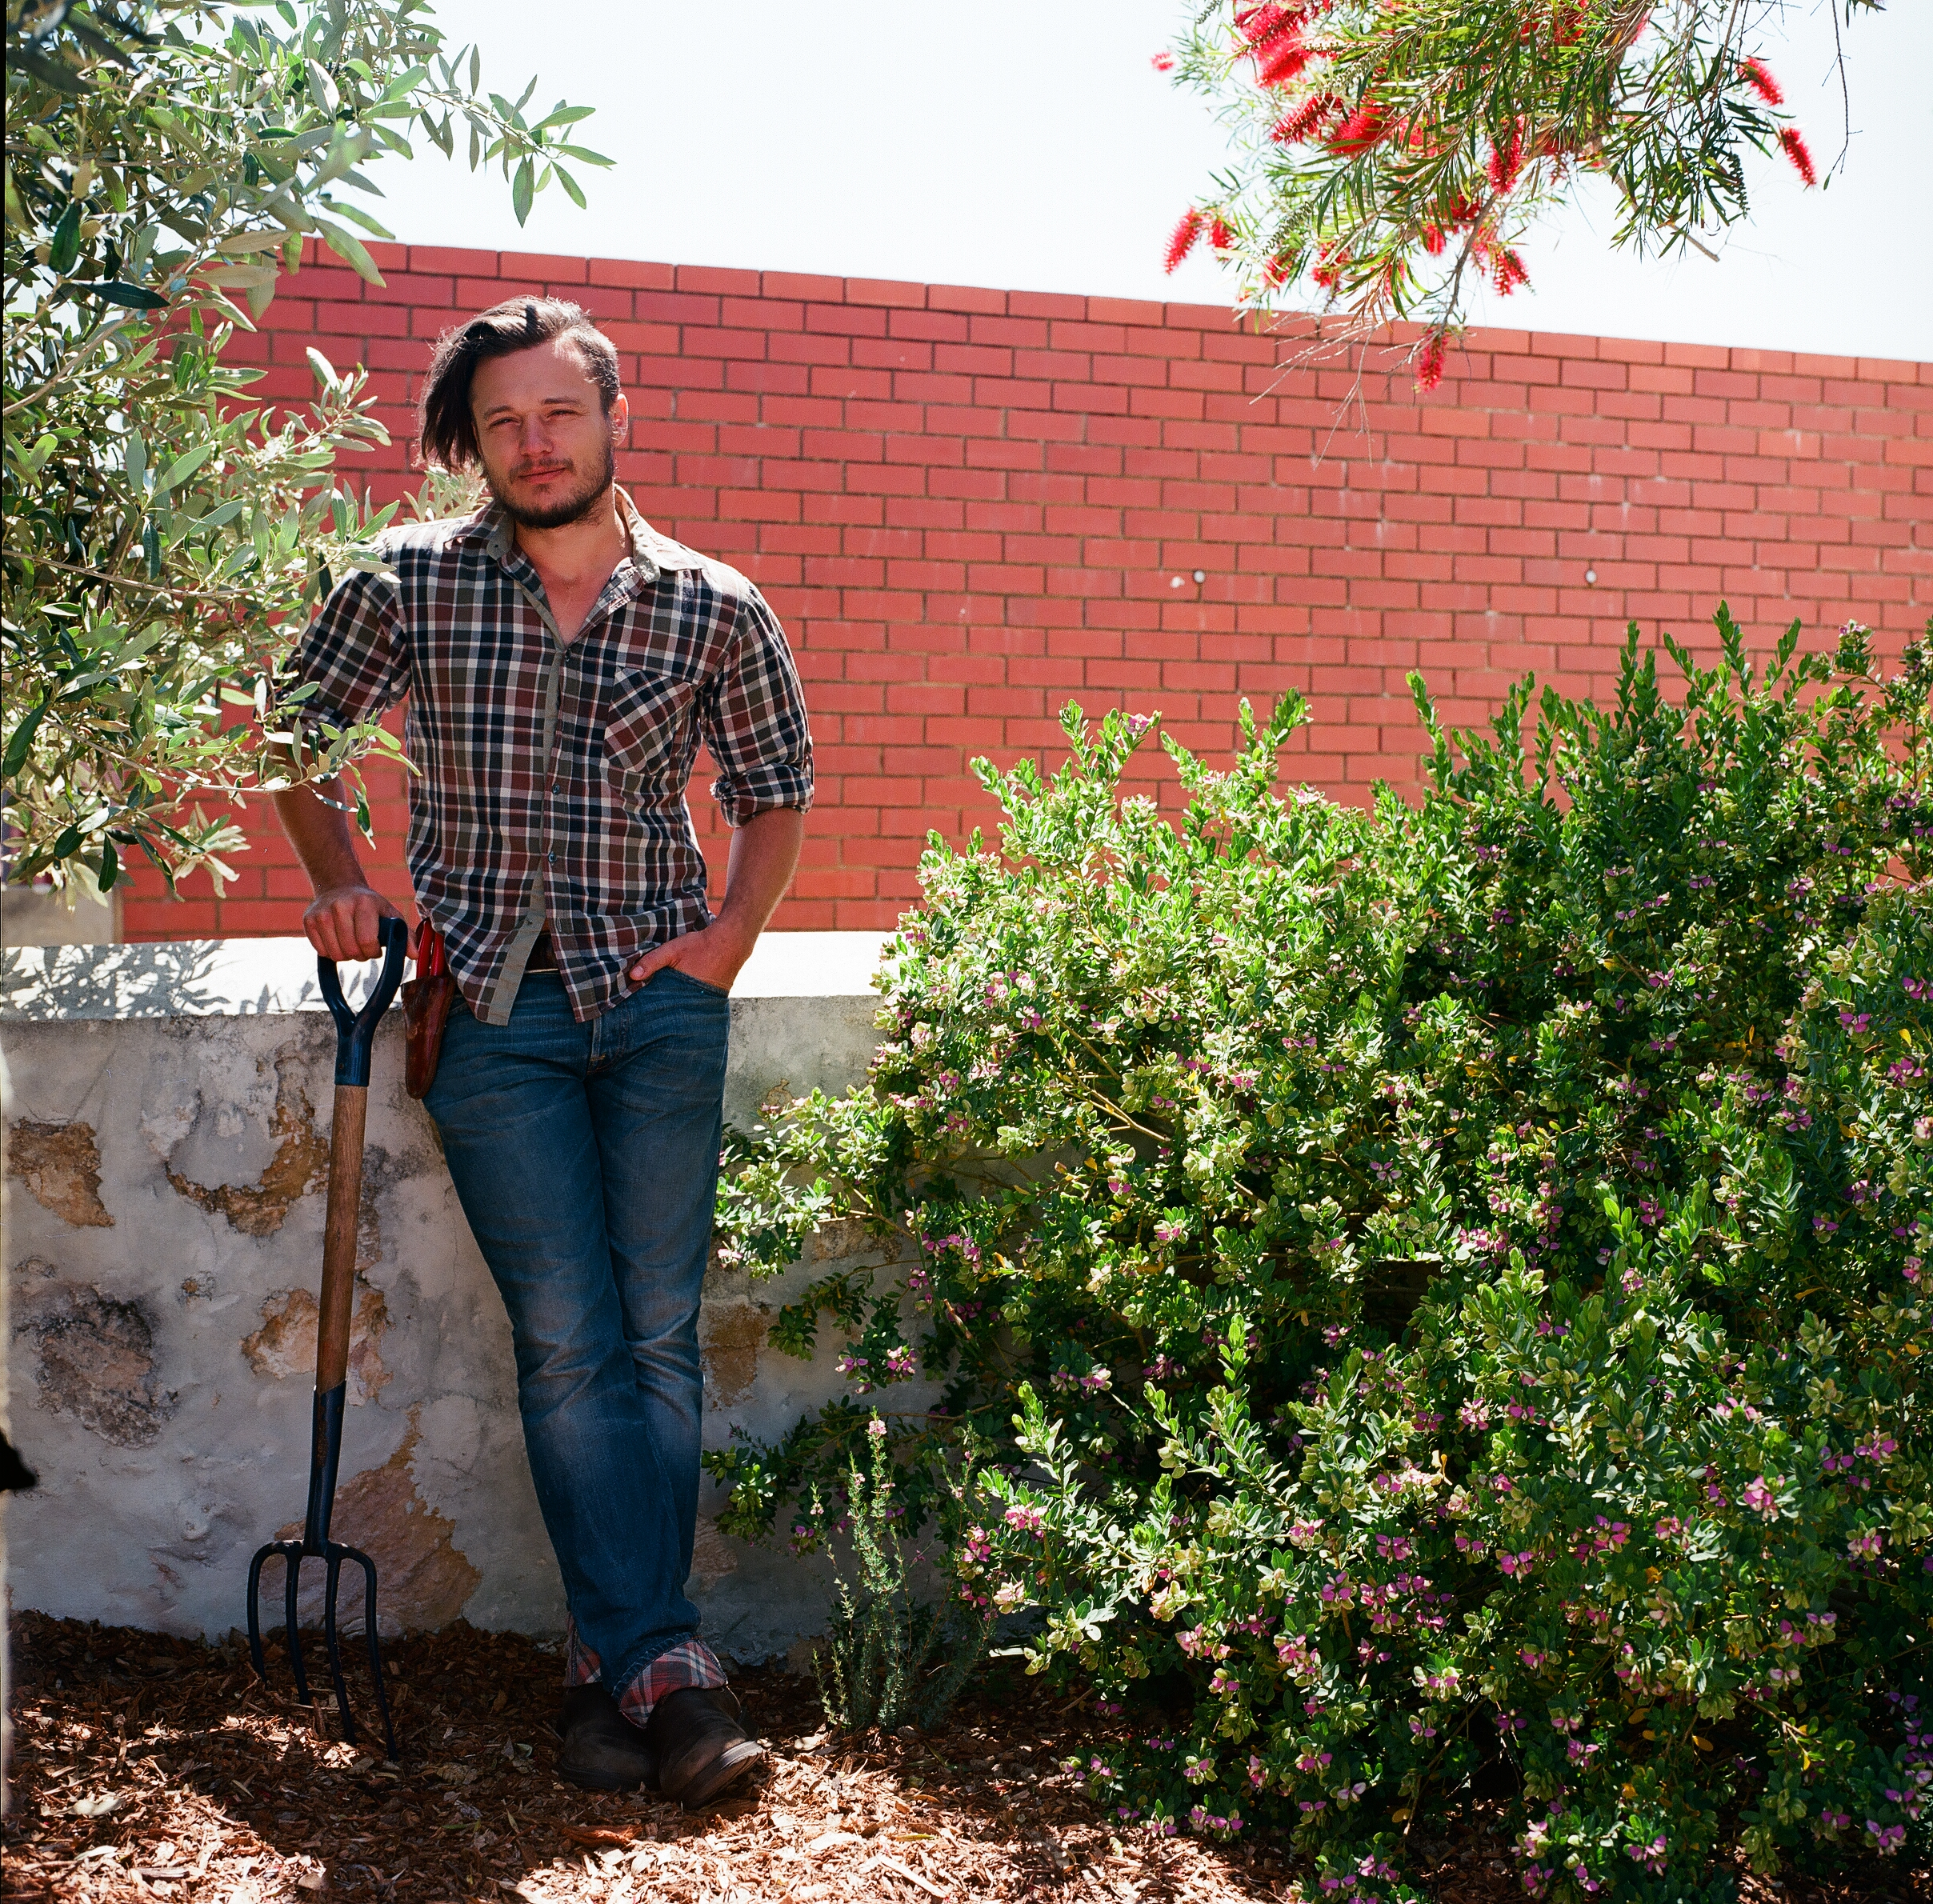 Gardener Archive. 2016. Dom in his garden in Fremantle, Perth Australia